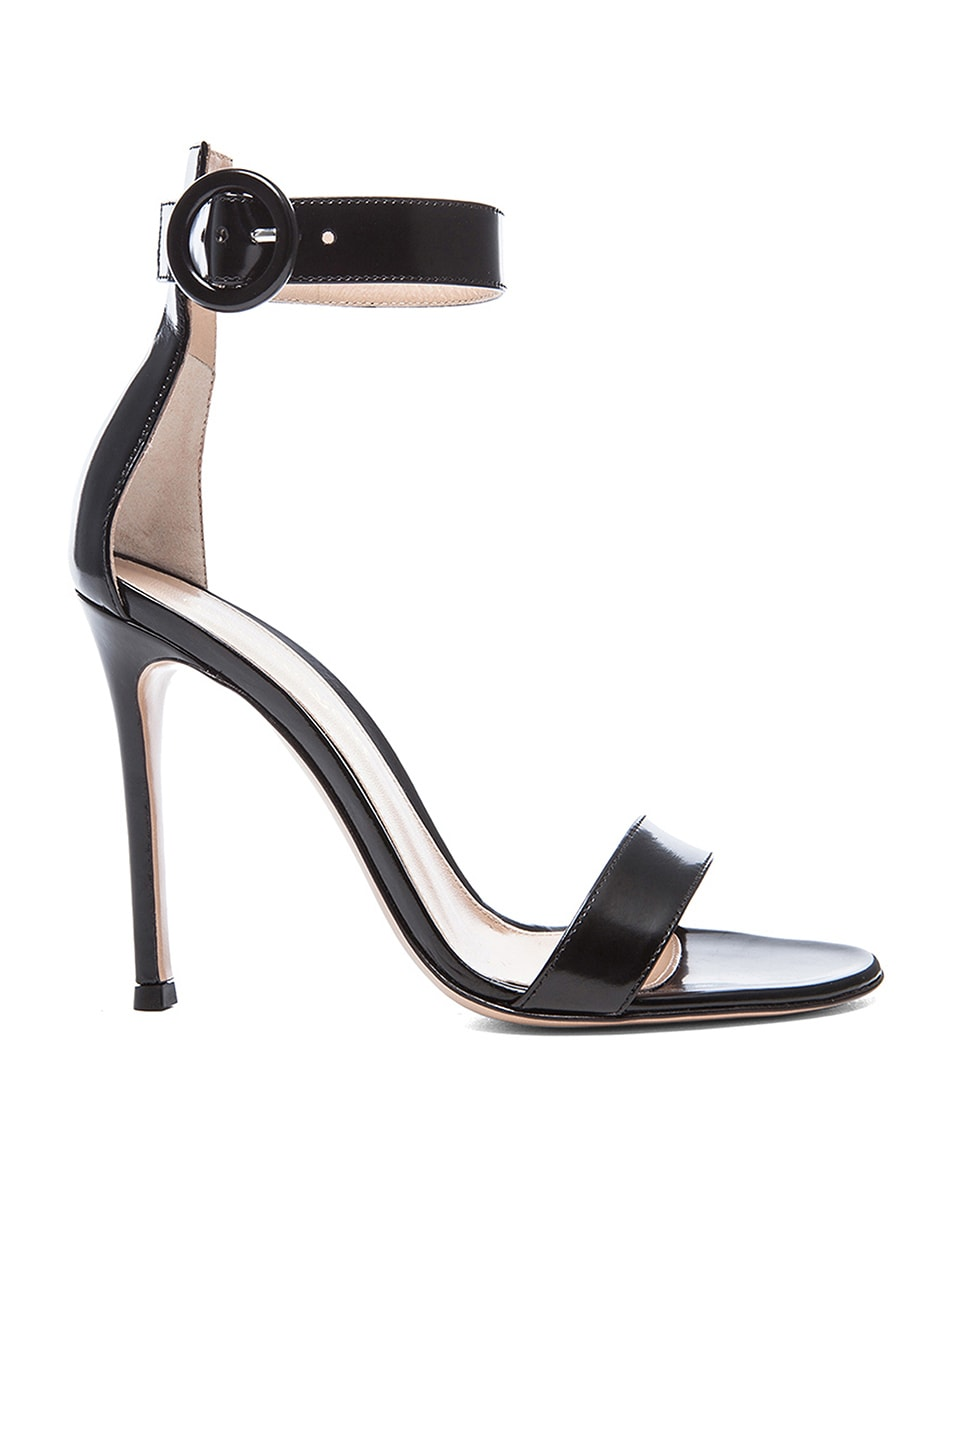 Image 1 of Gianvito Rossi Patent Portofino Heels in Black